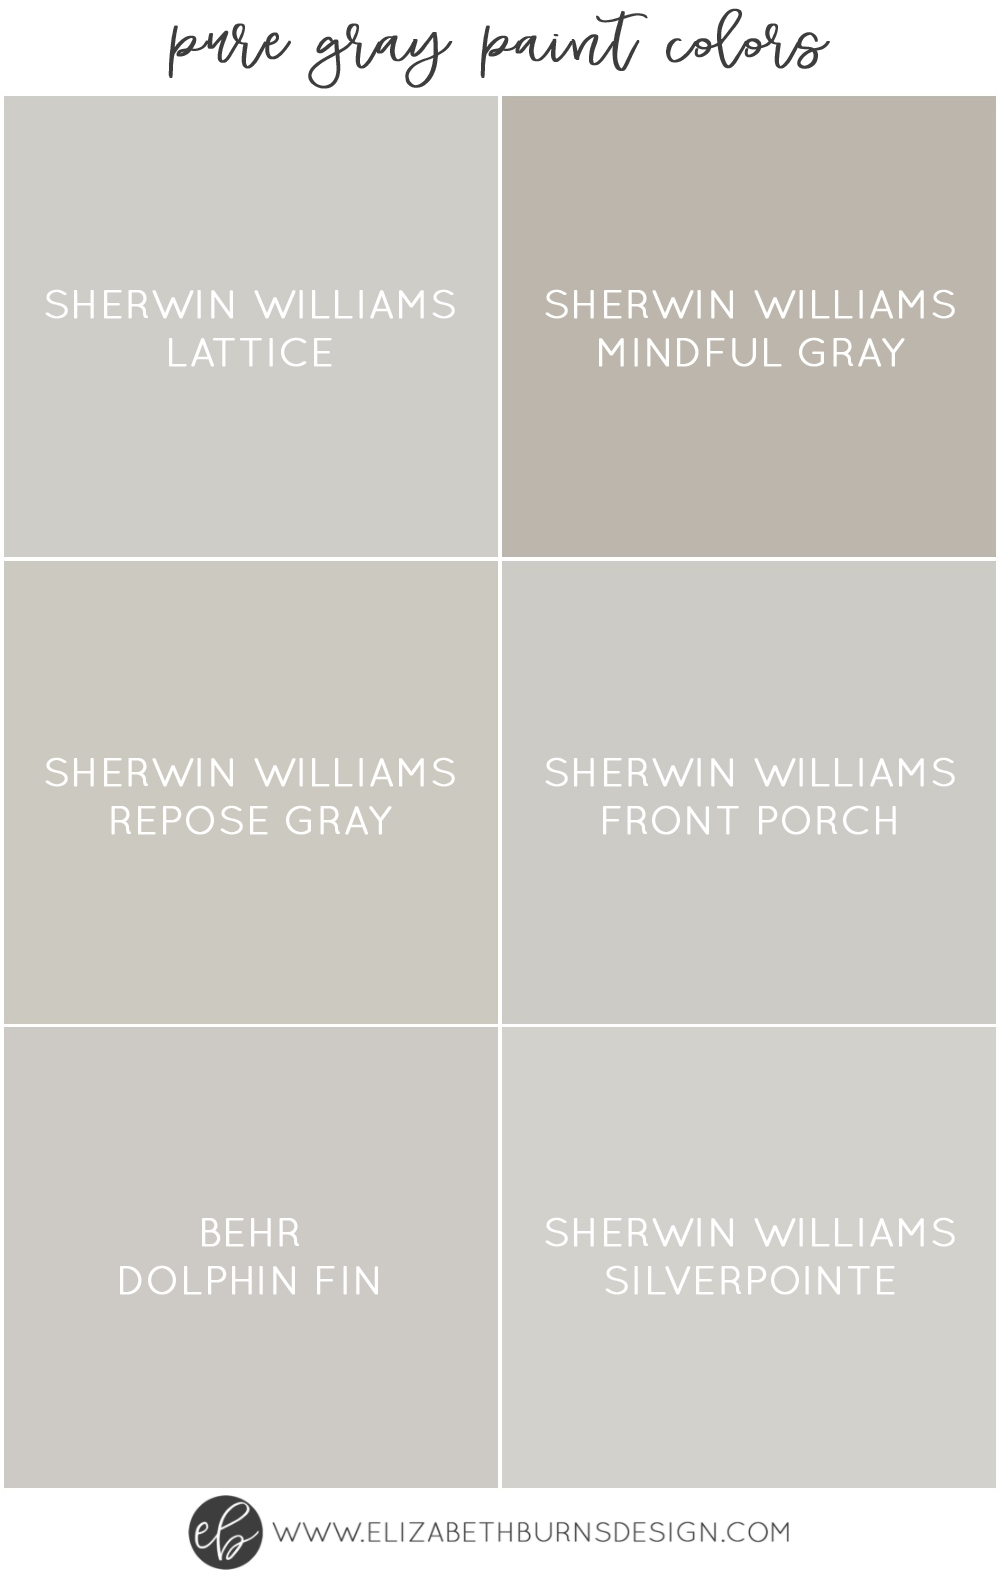 Charming Elizabeth Burns Design | Pure Gray Paint Colors   Sherwin Williams Lattice, Sherwin  Williams Mindful